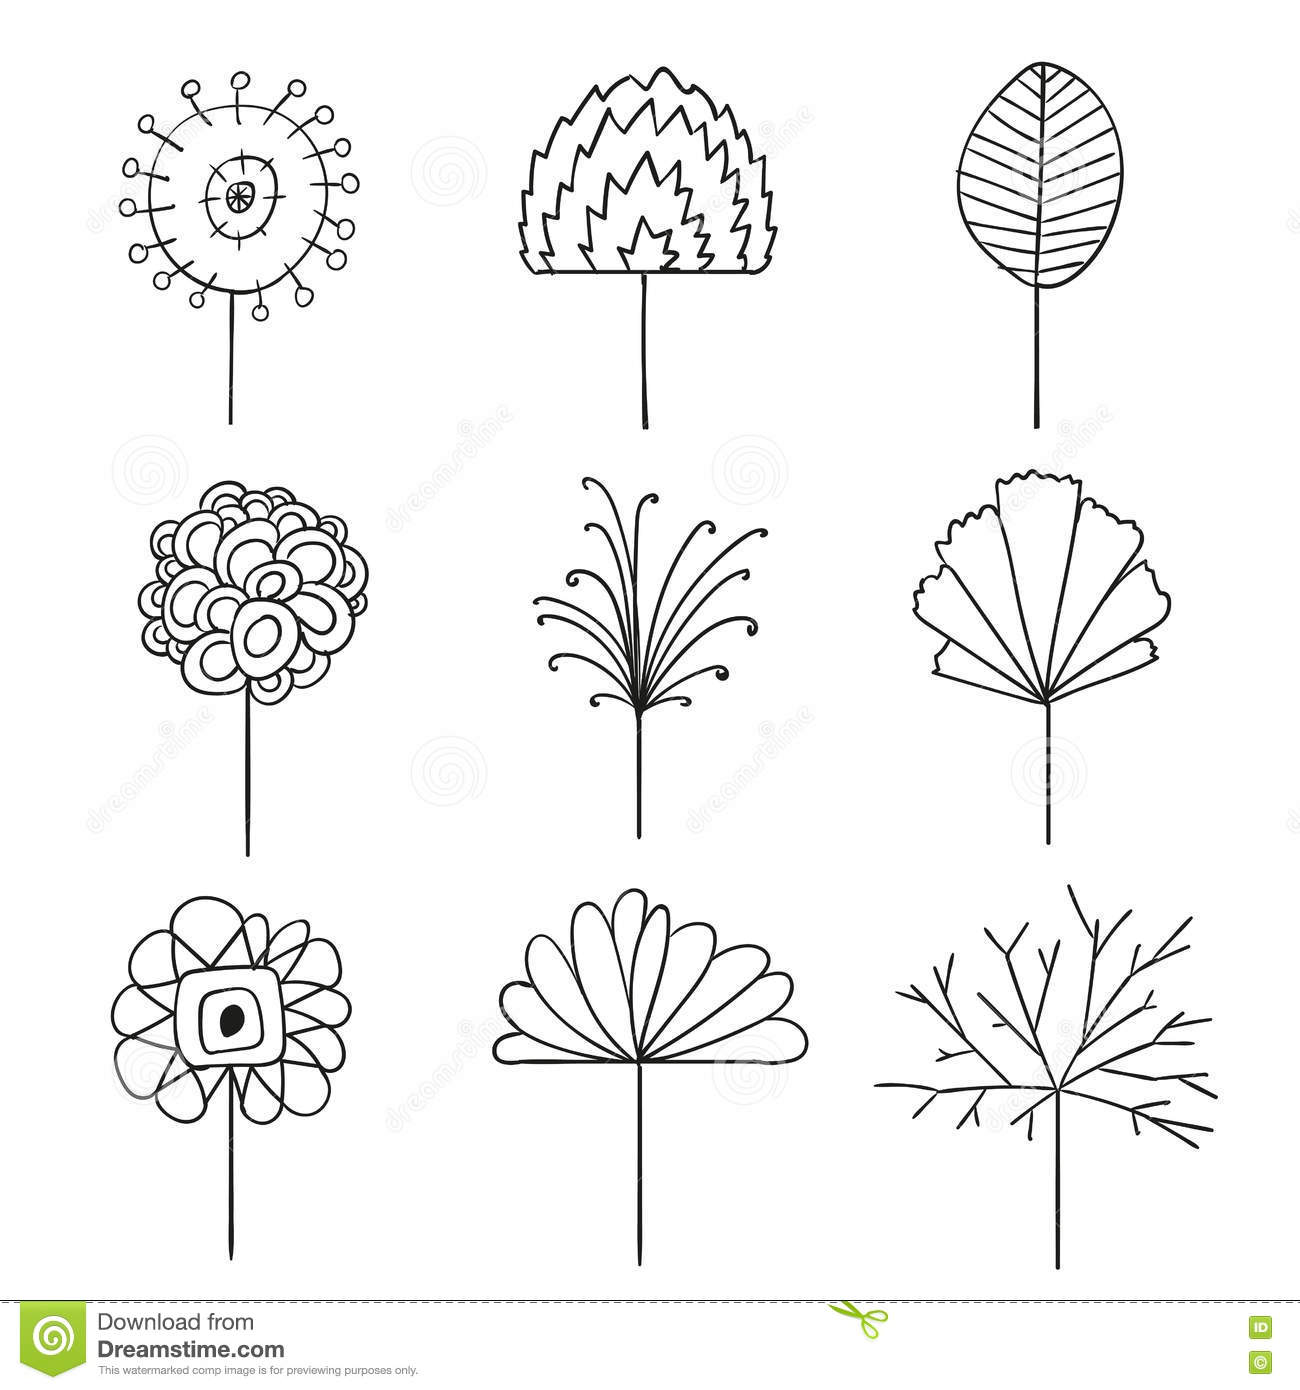 Line Art Design Abstract : Abstract floral line drawing design elements stock